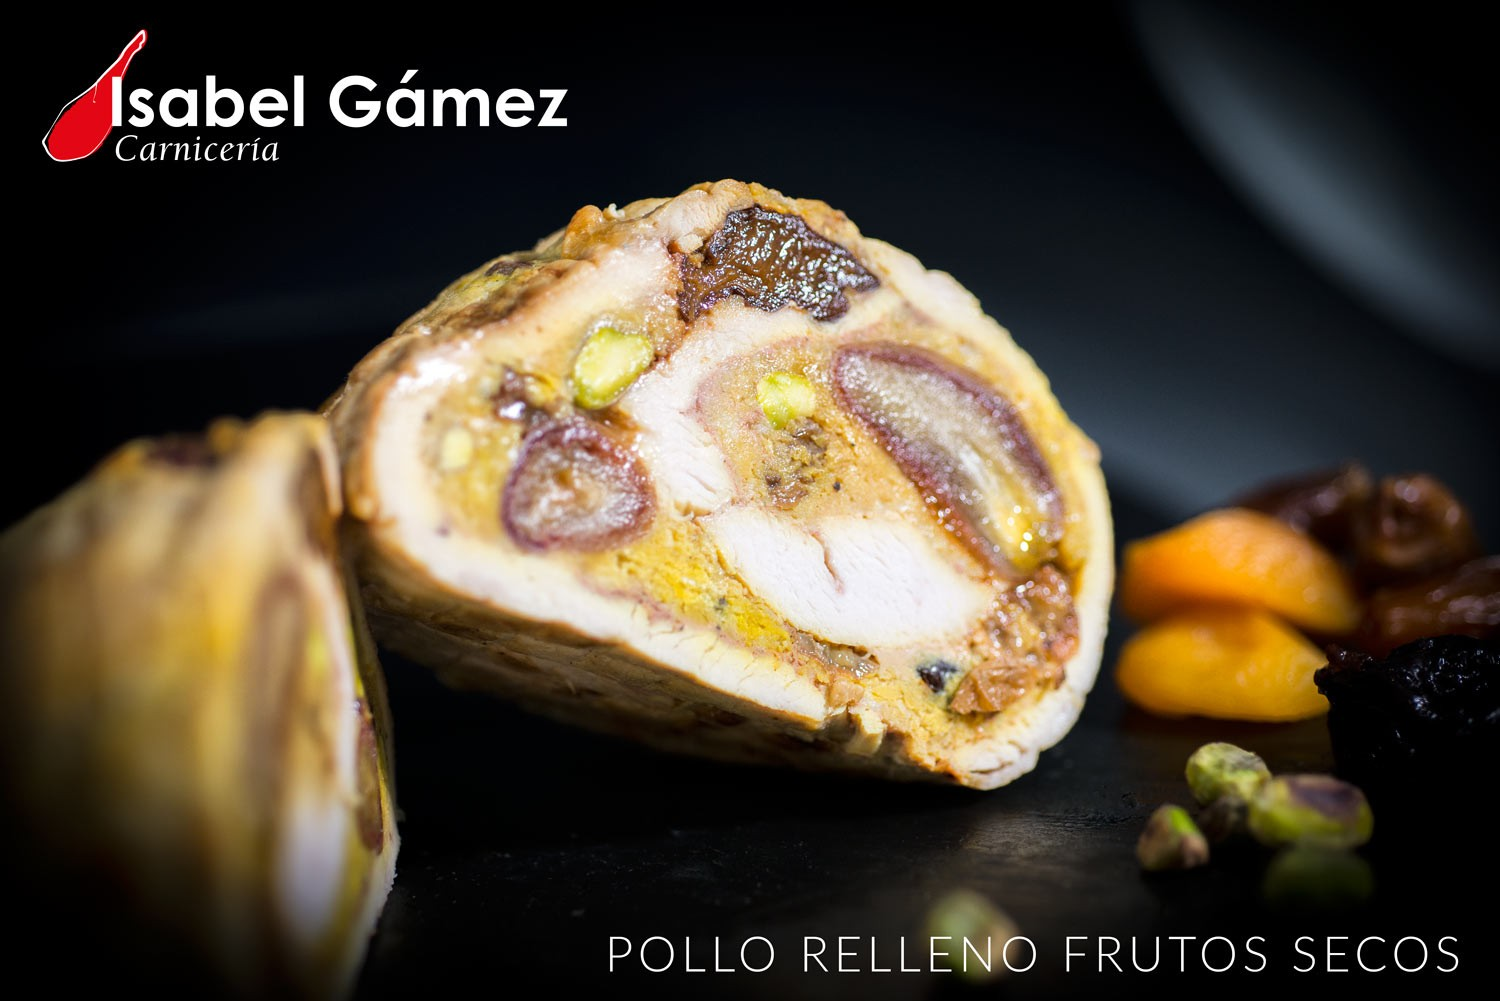 POLLO RELLENO FRUTOS SECOS